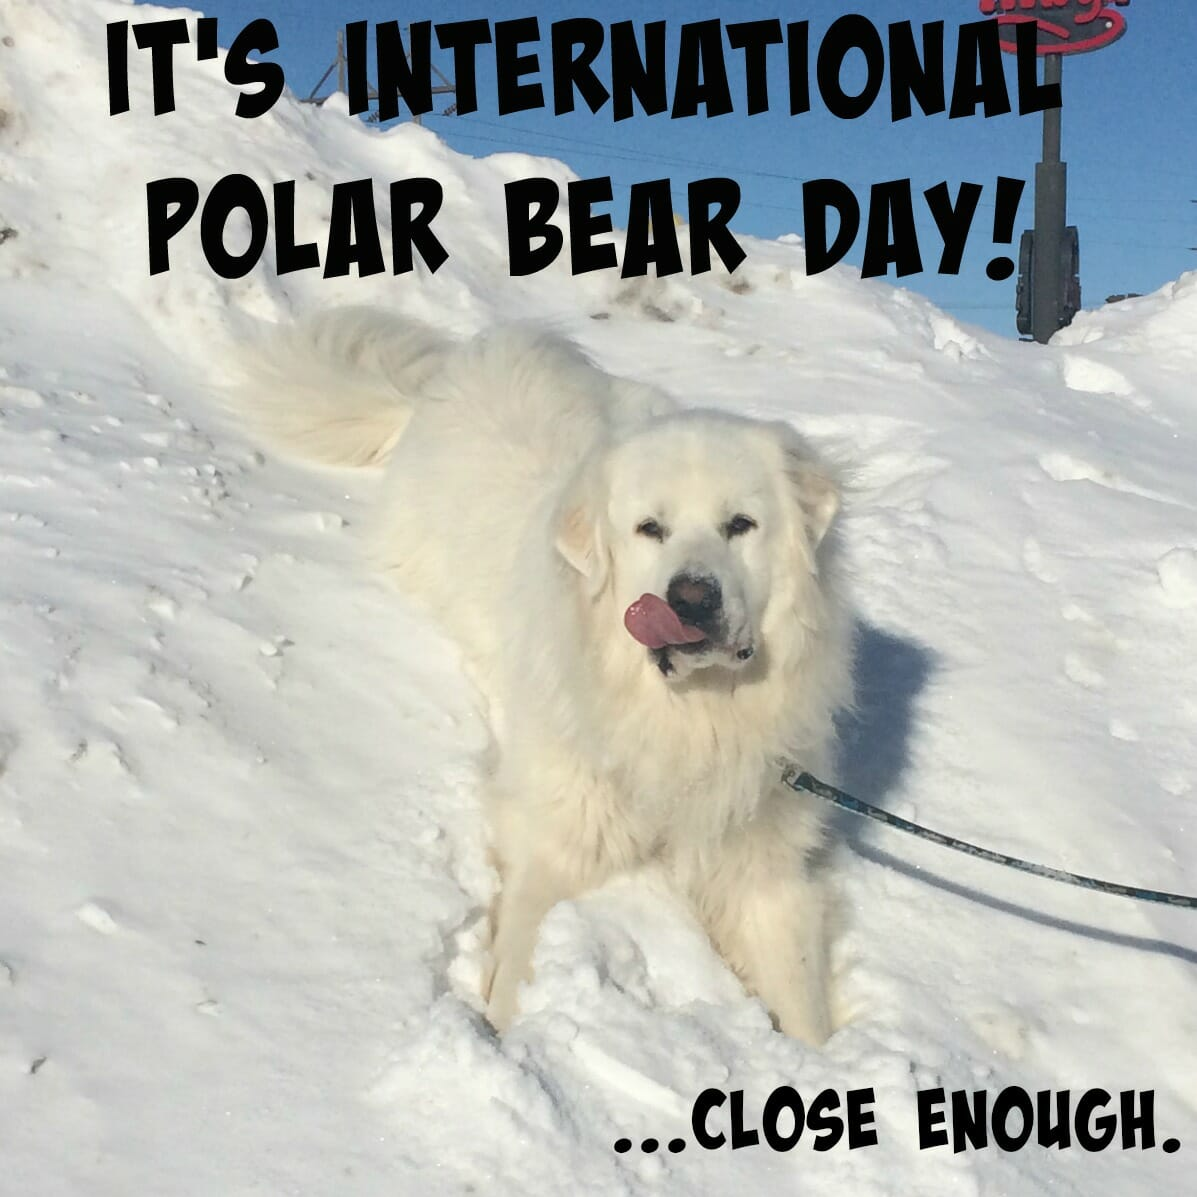 It's International What Day?